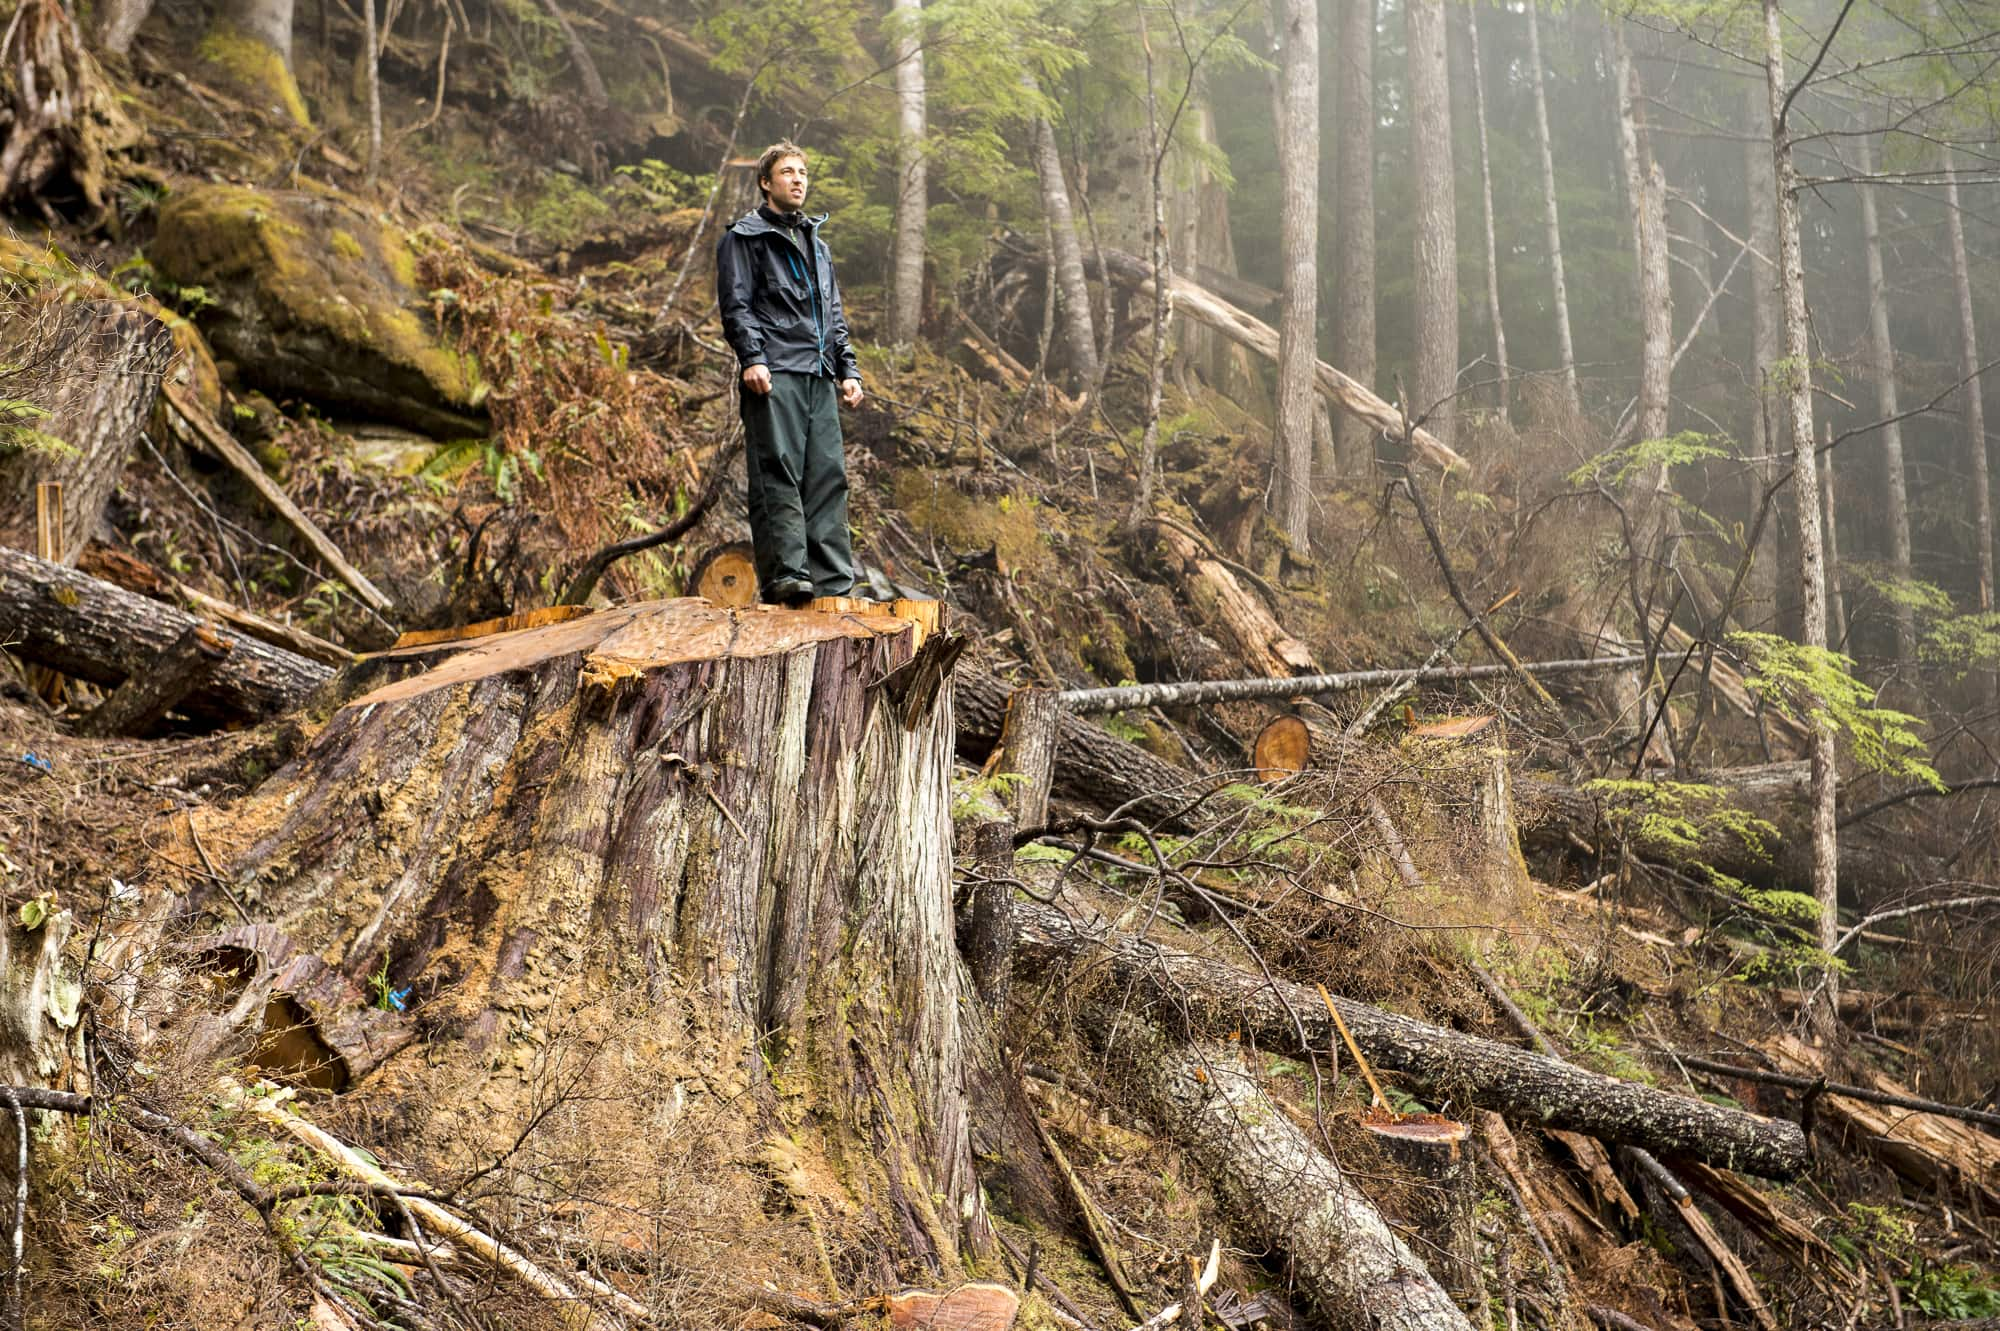 B.C.'s old-growth forest nearly eliminated, new provincewide mapping reveals